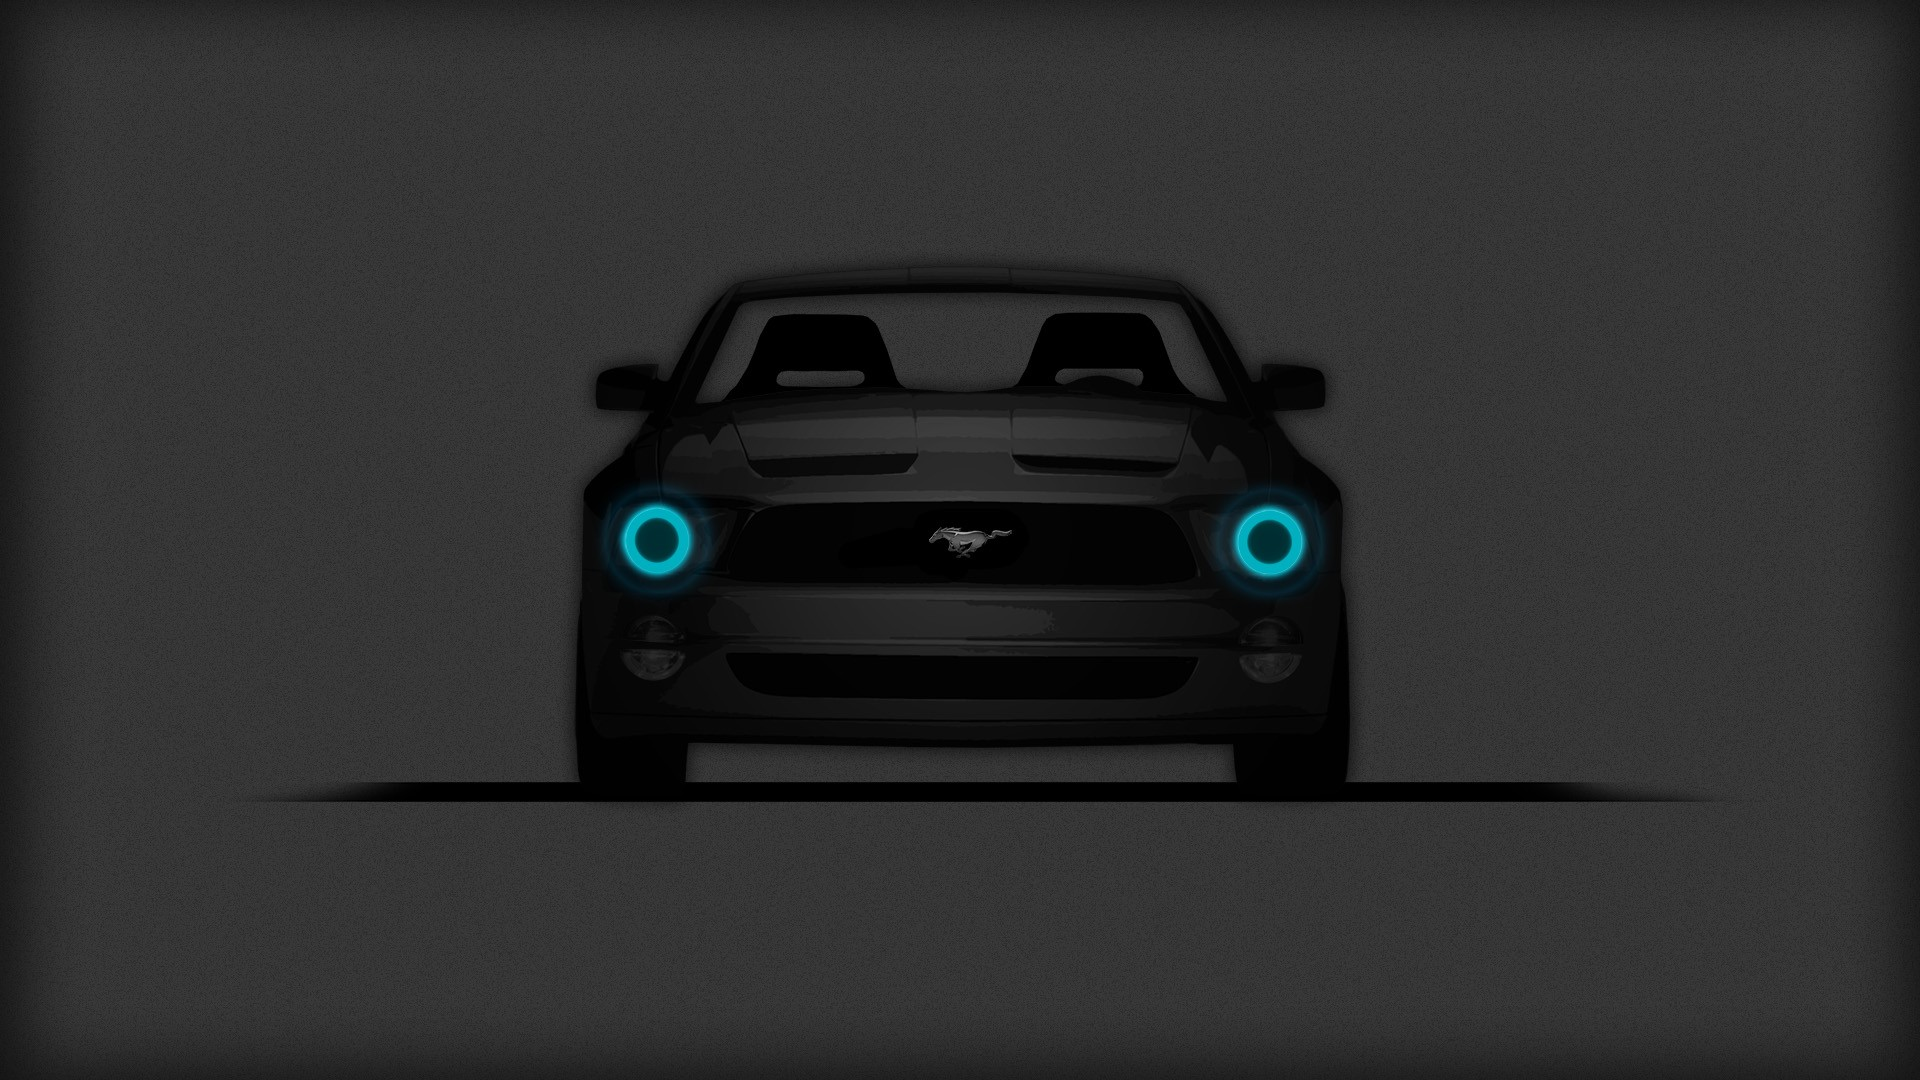 Ford Mustang Ford Mustang GT Car Minimalism Muscle